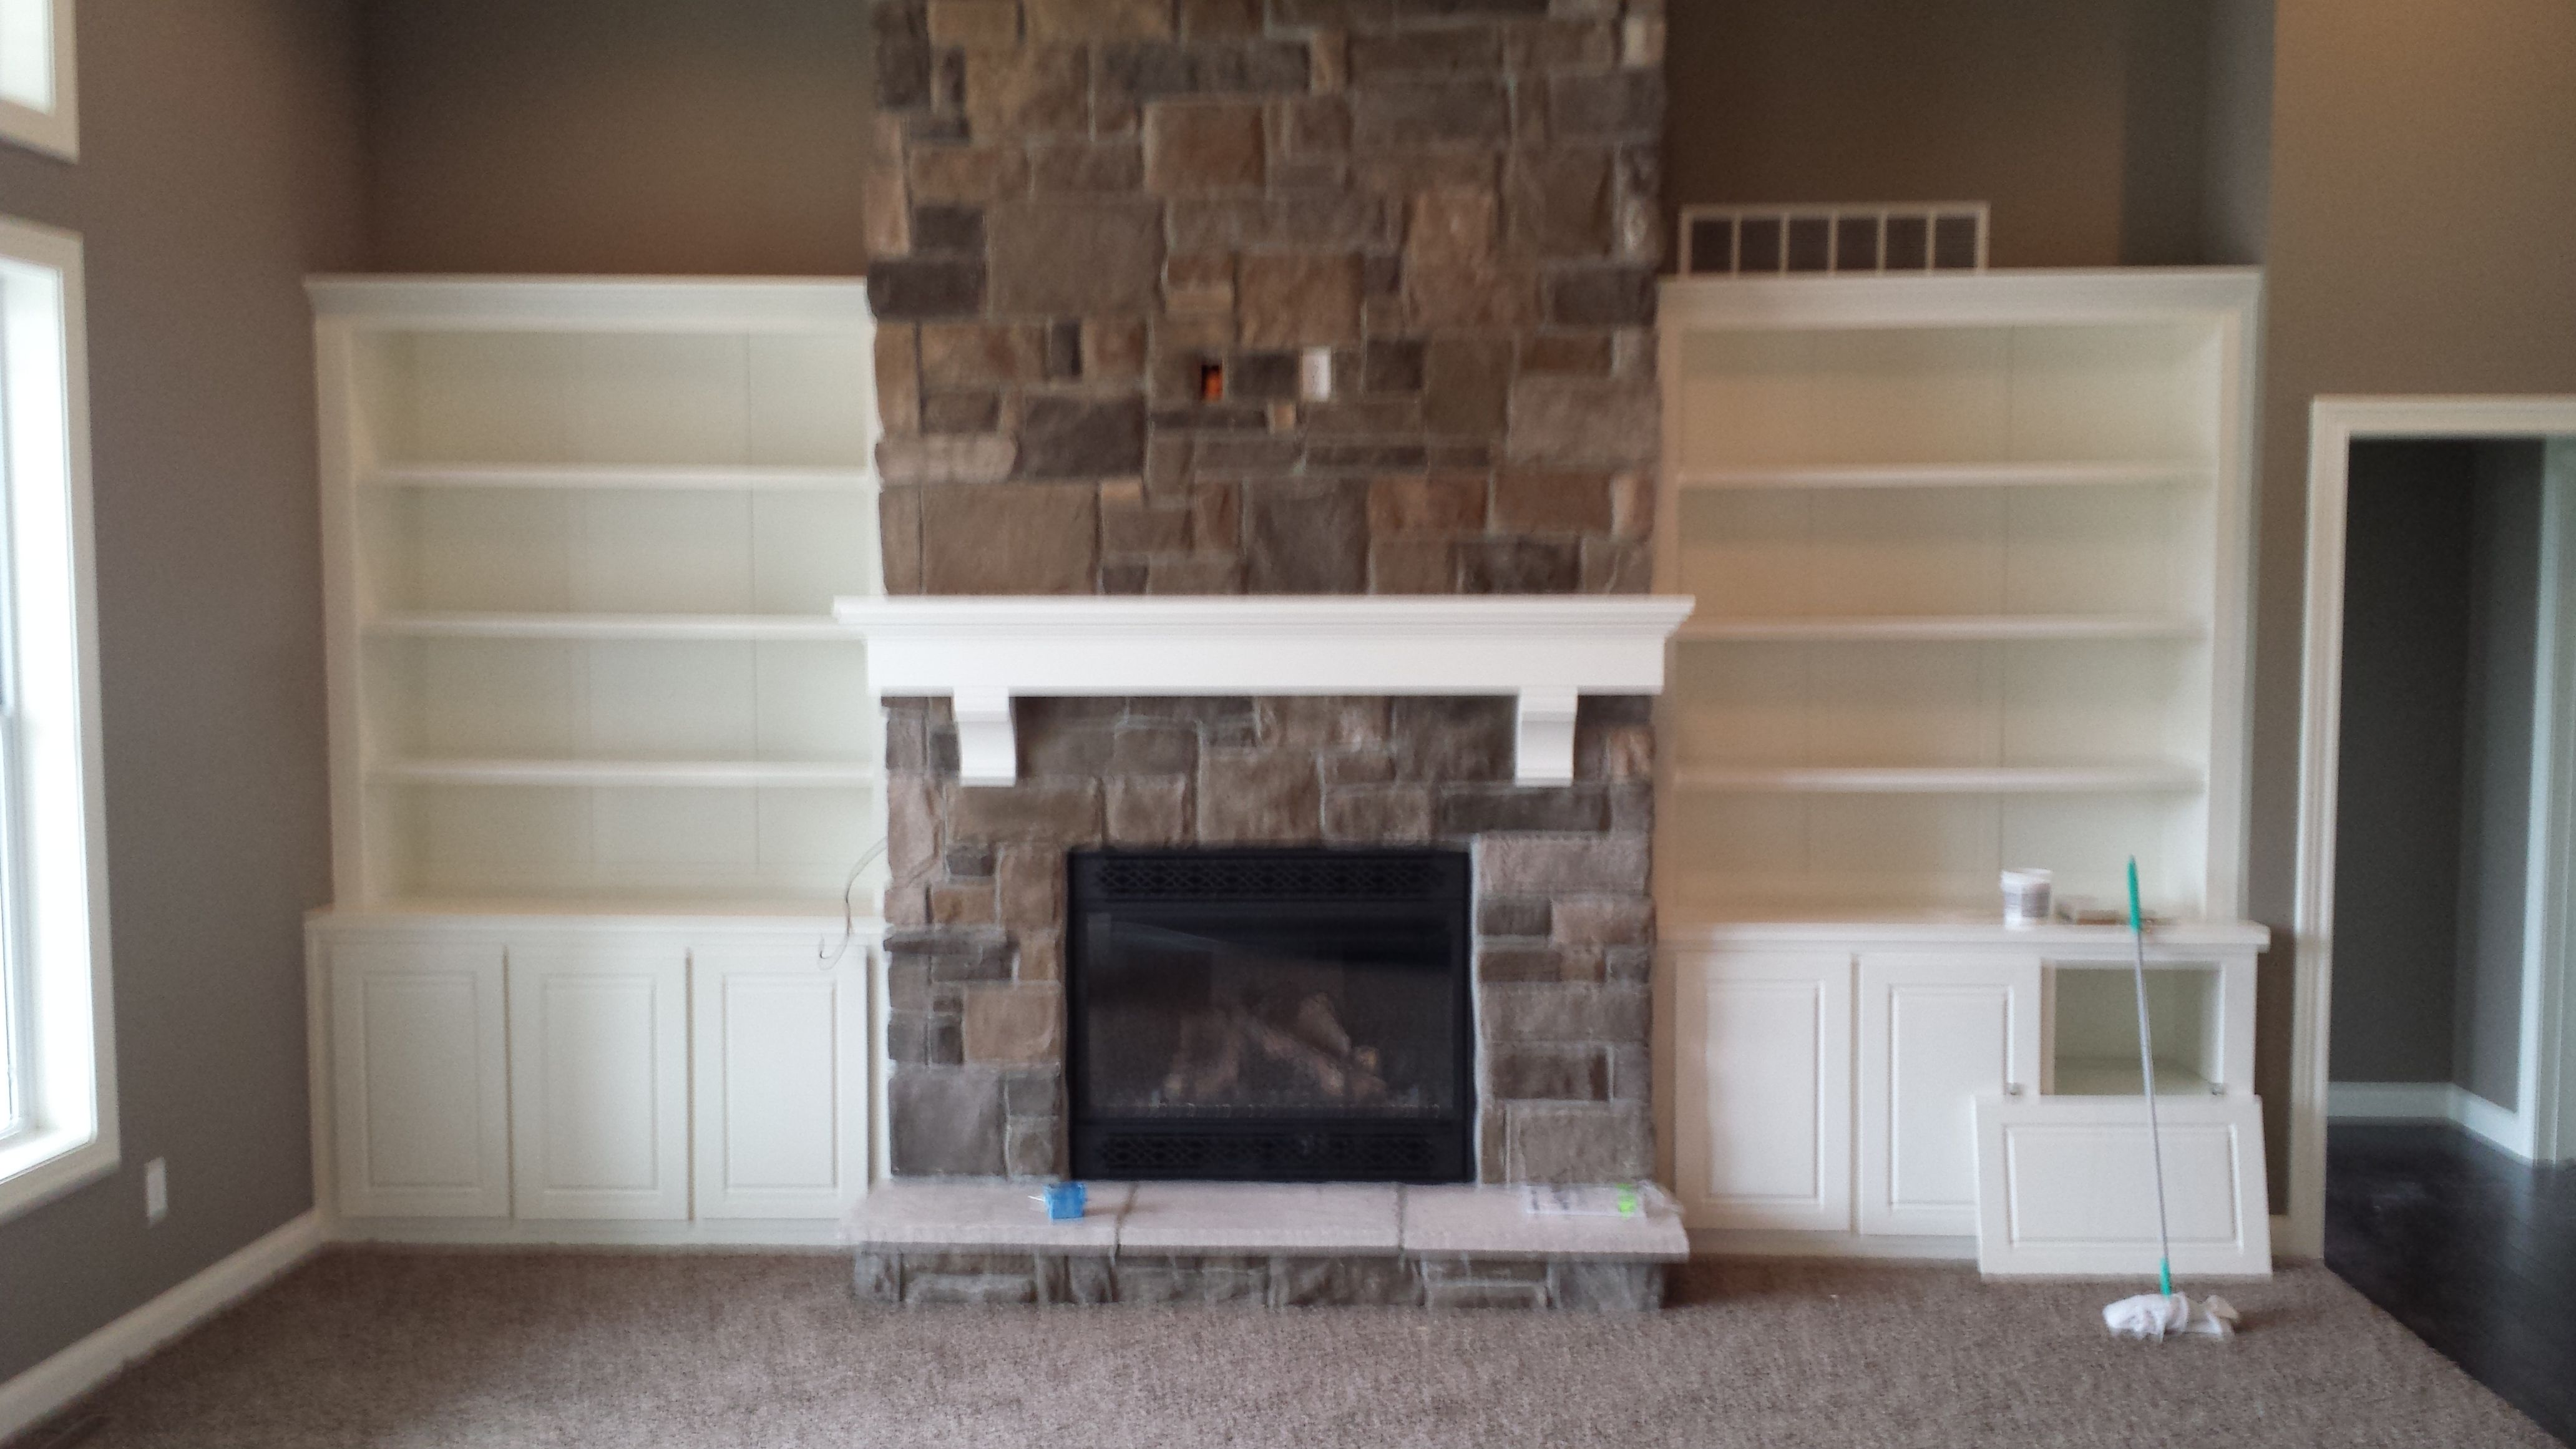 Fireplaces With Stone Surrounding Custom Built In Shelves Around Fireplace 3 4 Nitimifotografie Nl